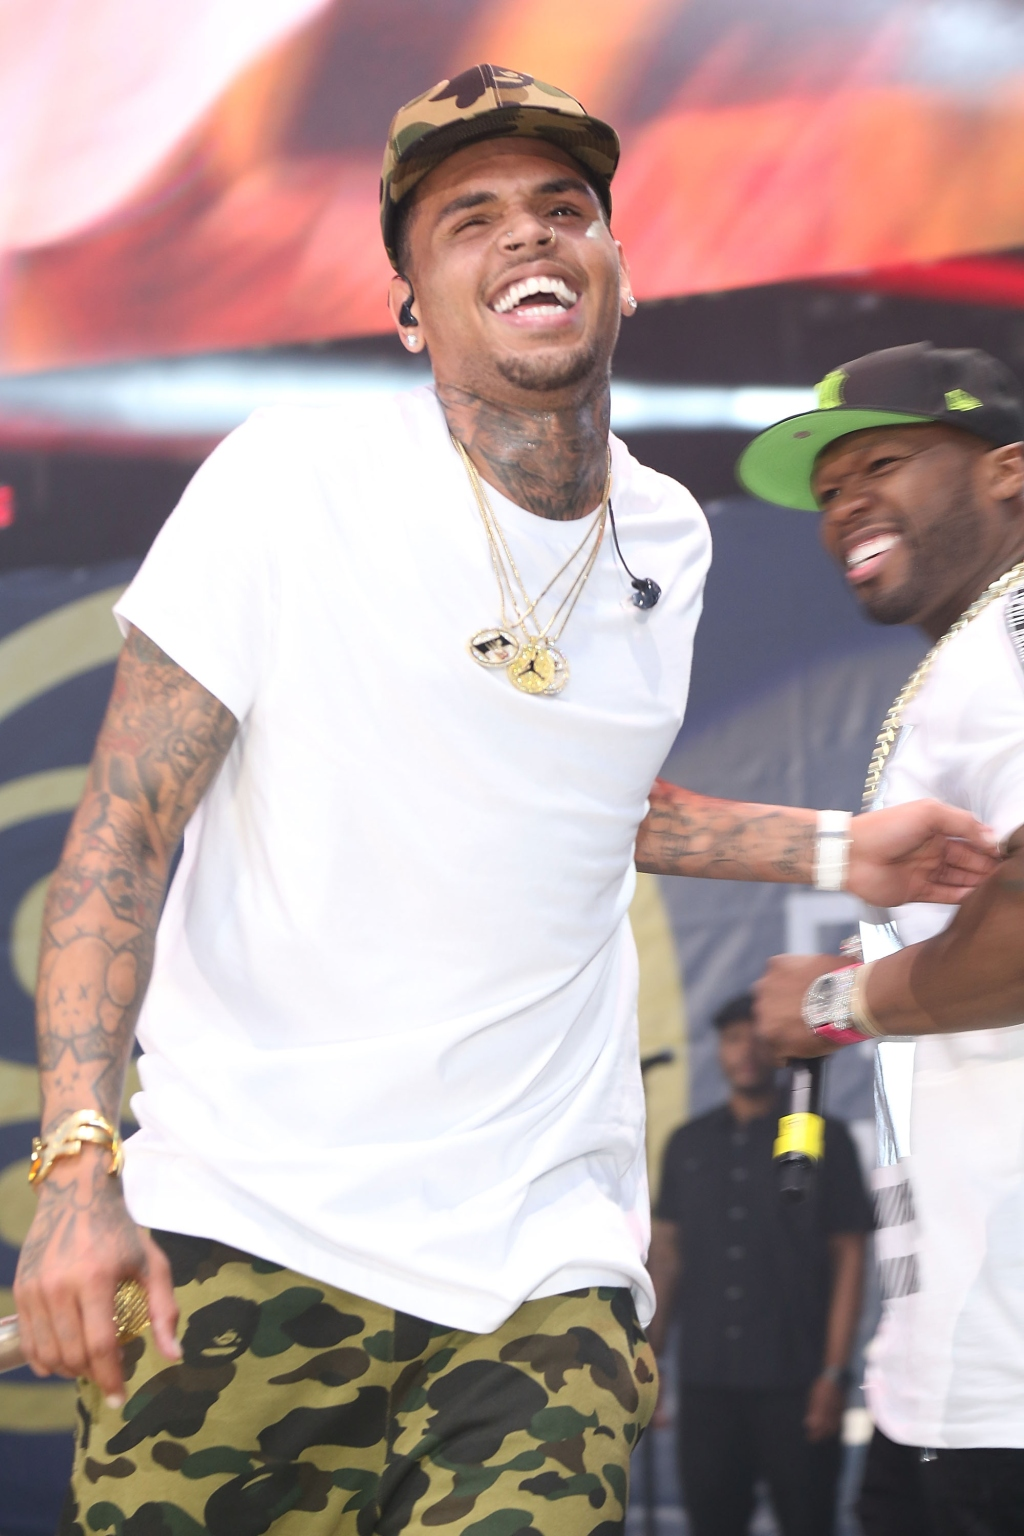 Chris Brown & 50 Cent - 2015 Hot 97 Summer Jam